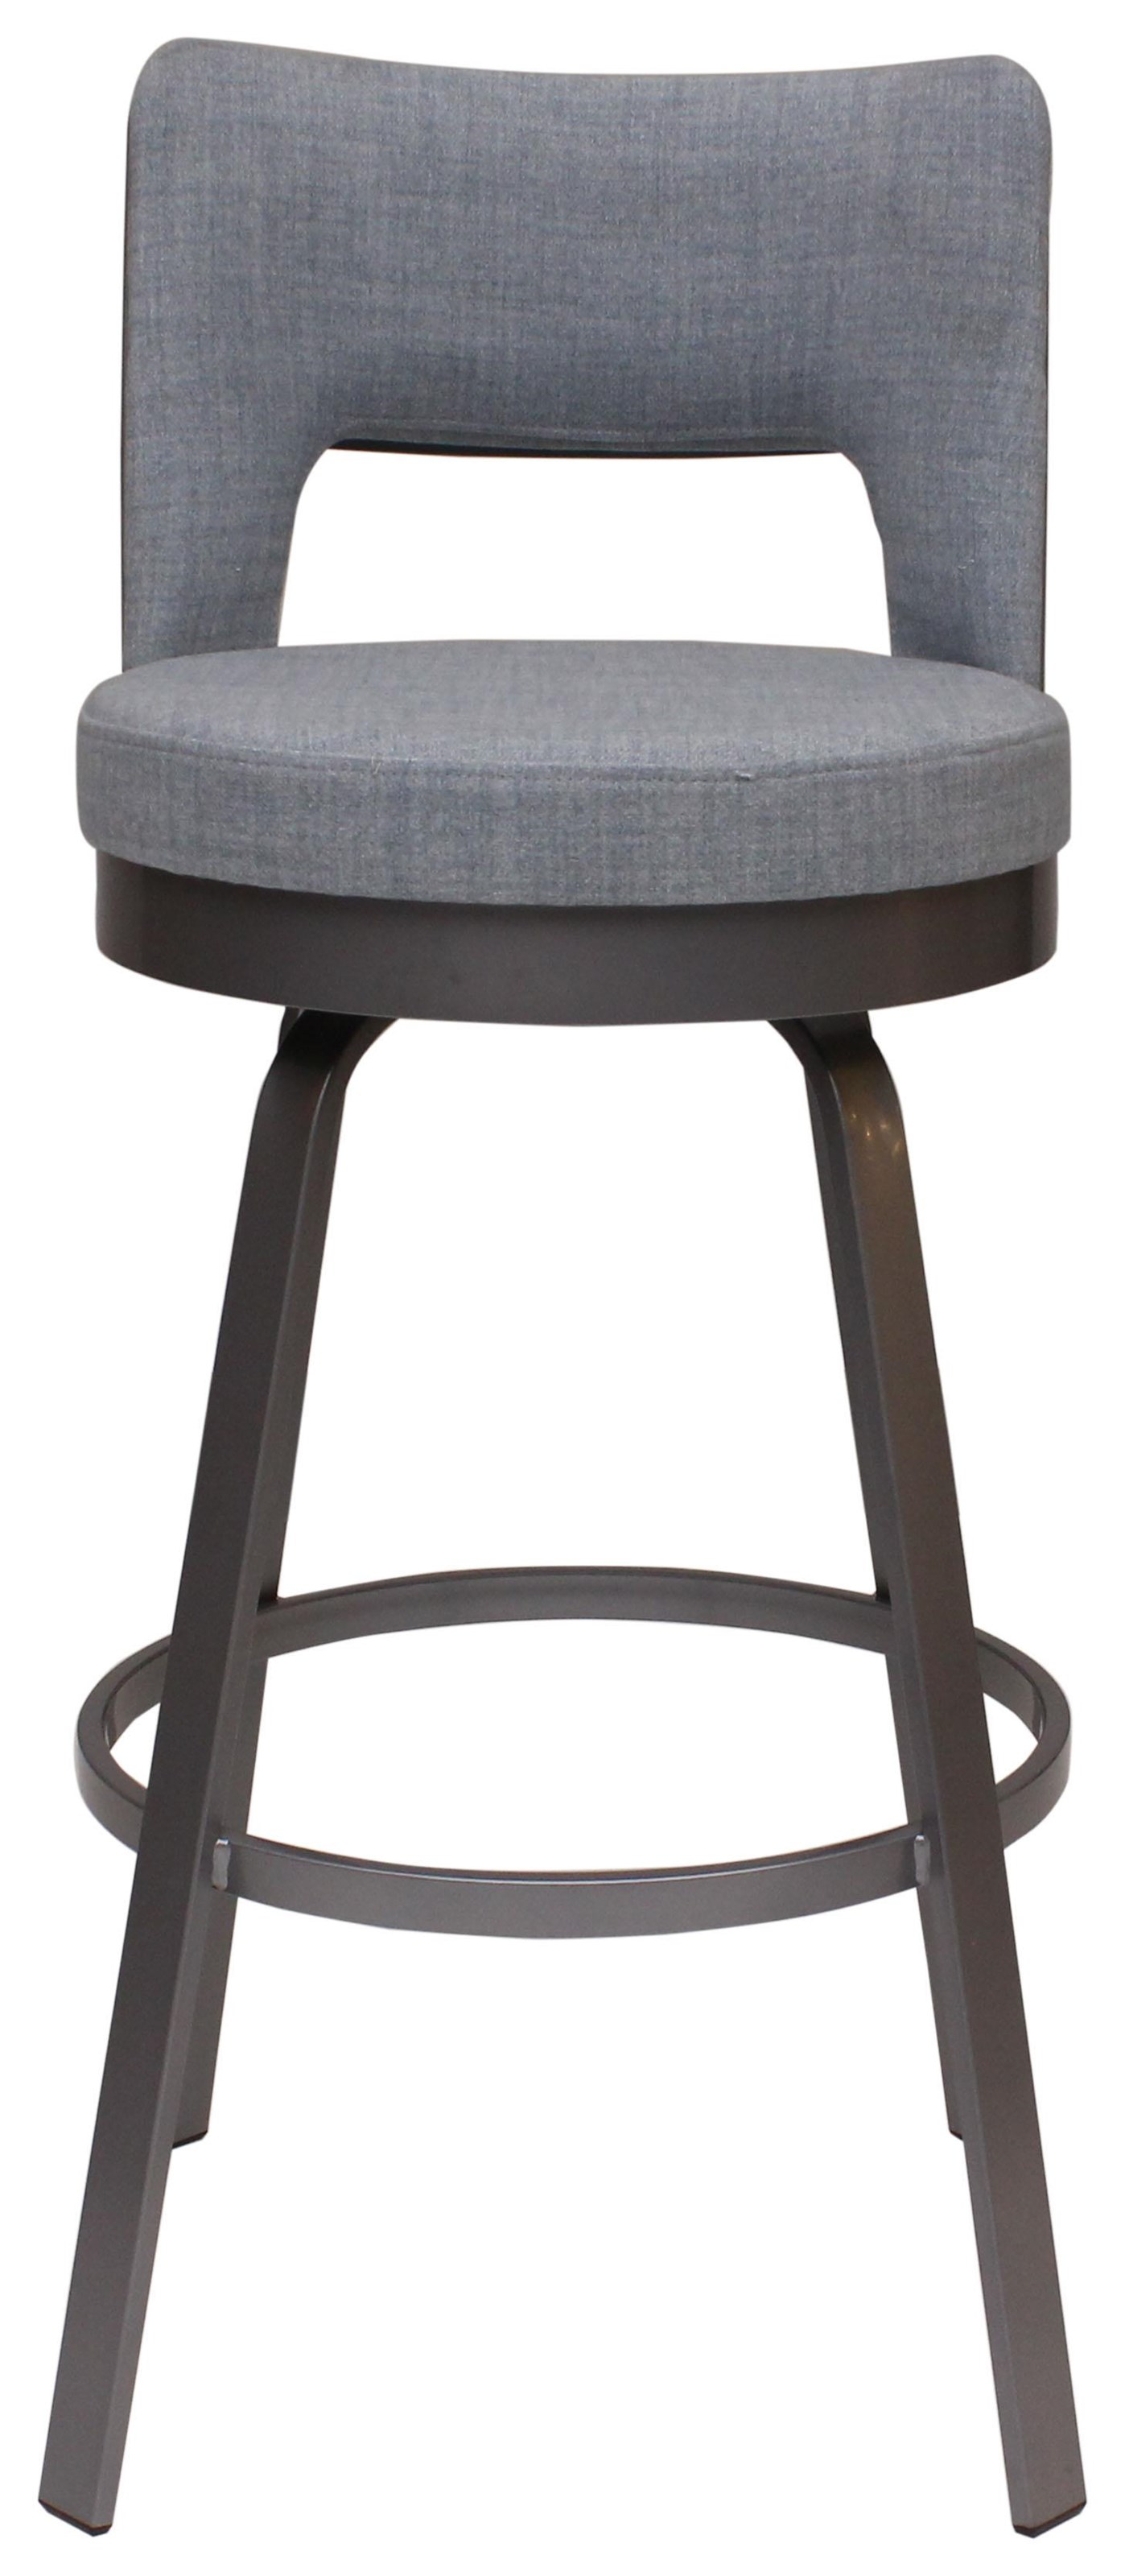 Brock Swivel Counterstool by Amisco at HomeWorld Furniture